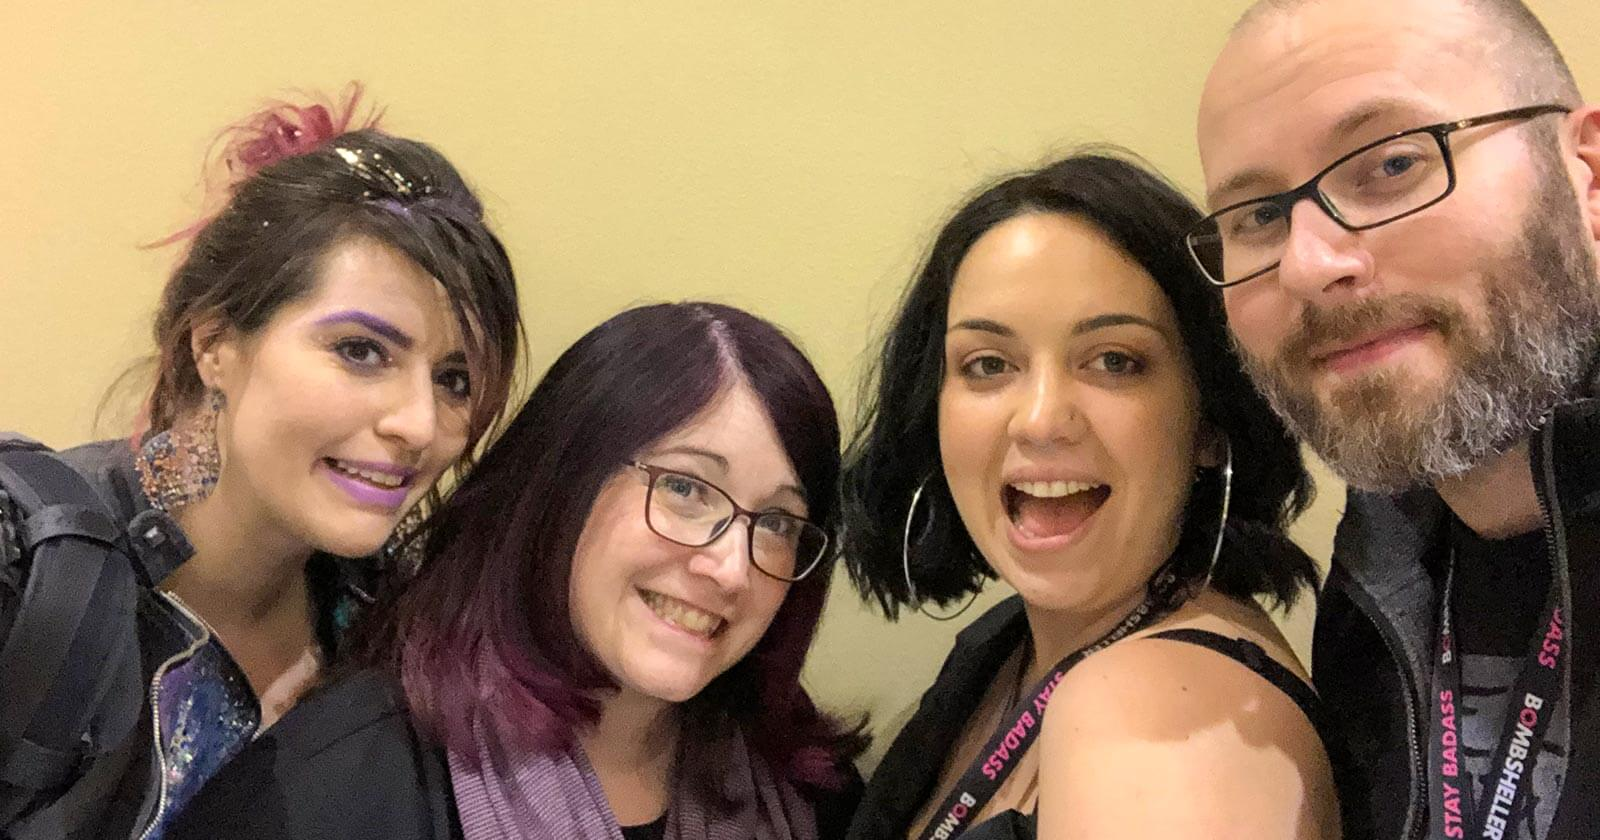 Jaimie Cordero (Espionage Cosmetics), Wendy Buske (Nerd For A Living), Jazzlyn Stone (Bombsheller), and Adron Buske (Fictitious)